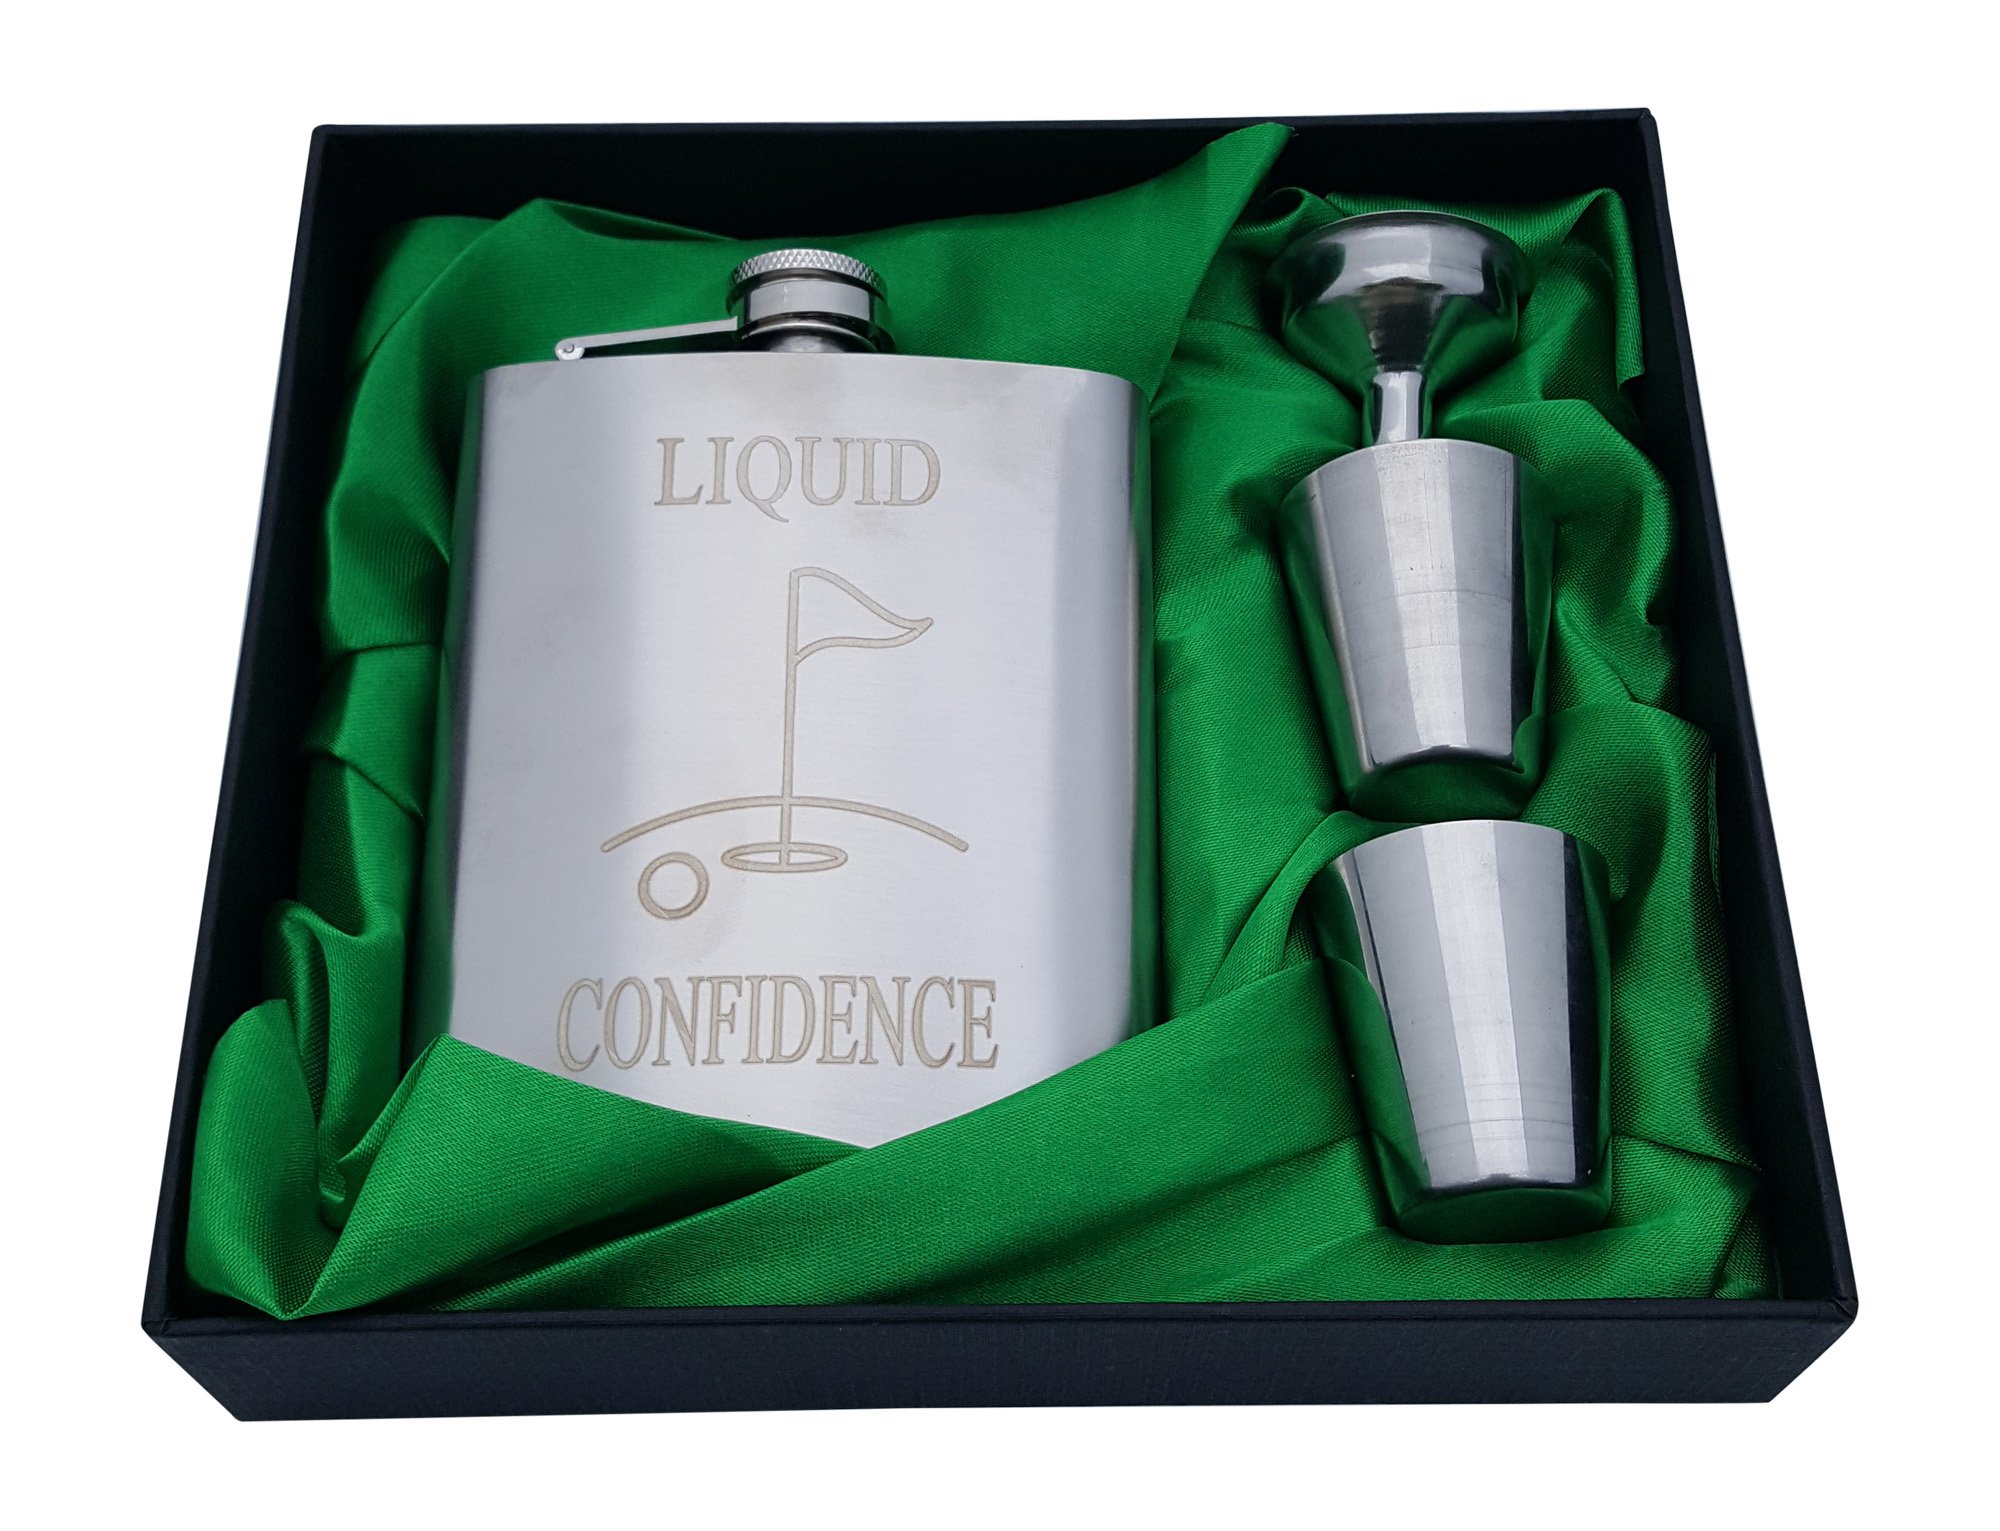 Golf Flask Gift Set - 7 oz Flask Engraved with''Liquid Confidence''